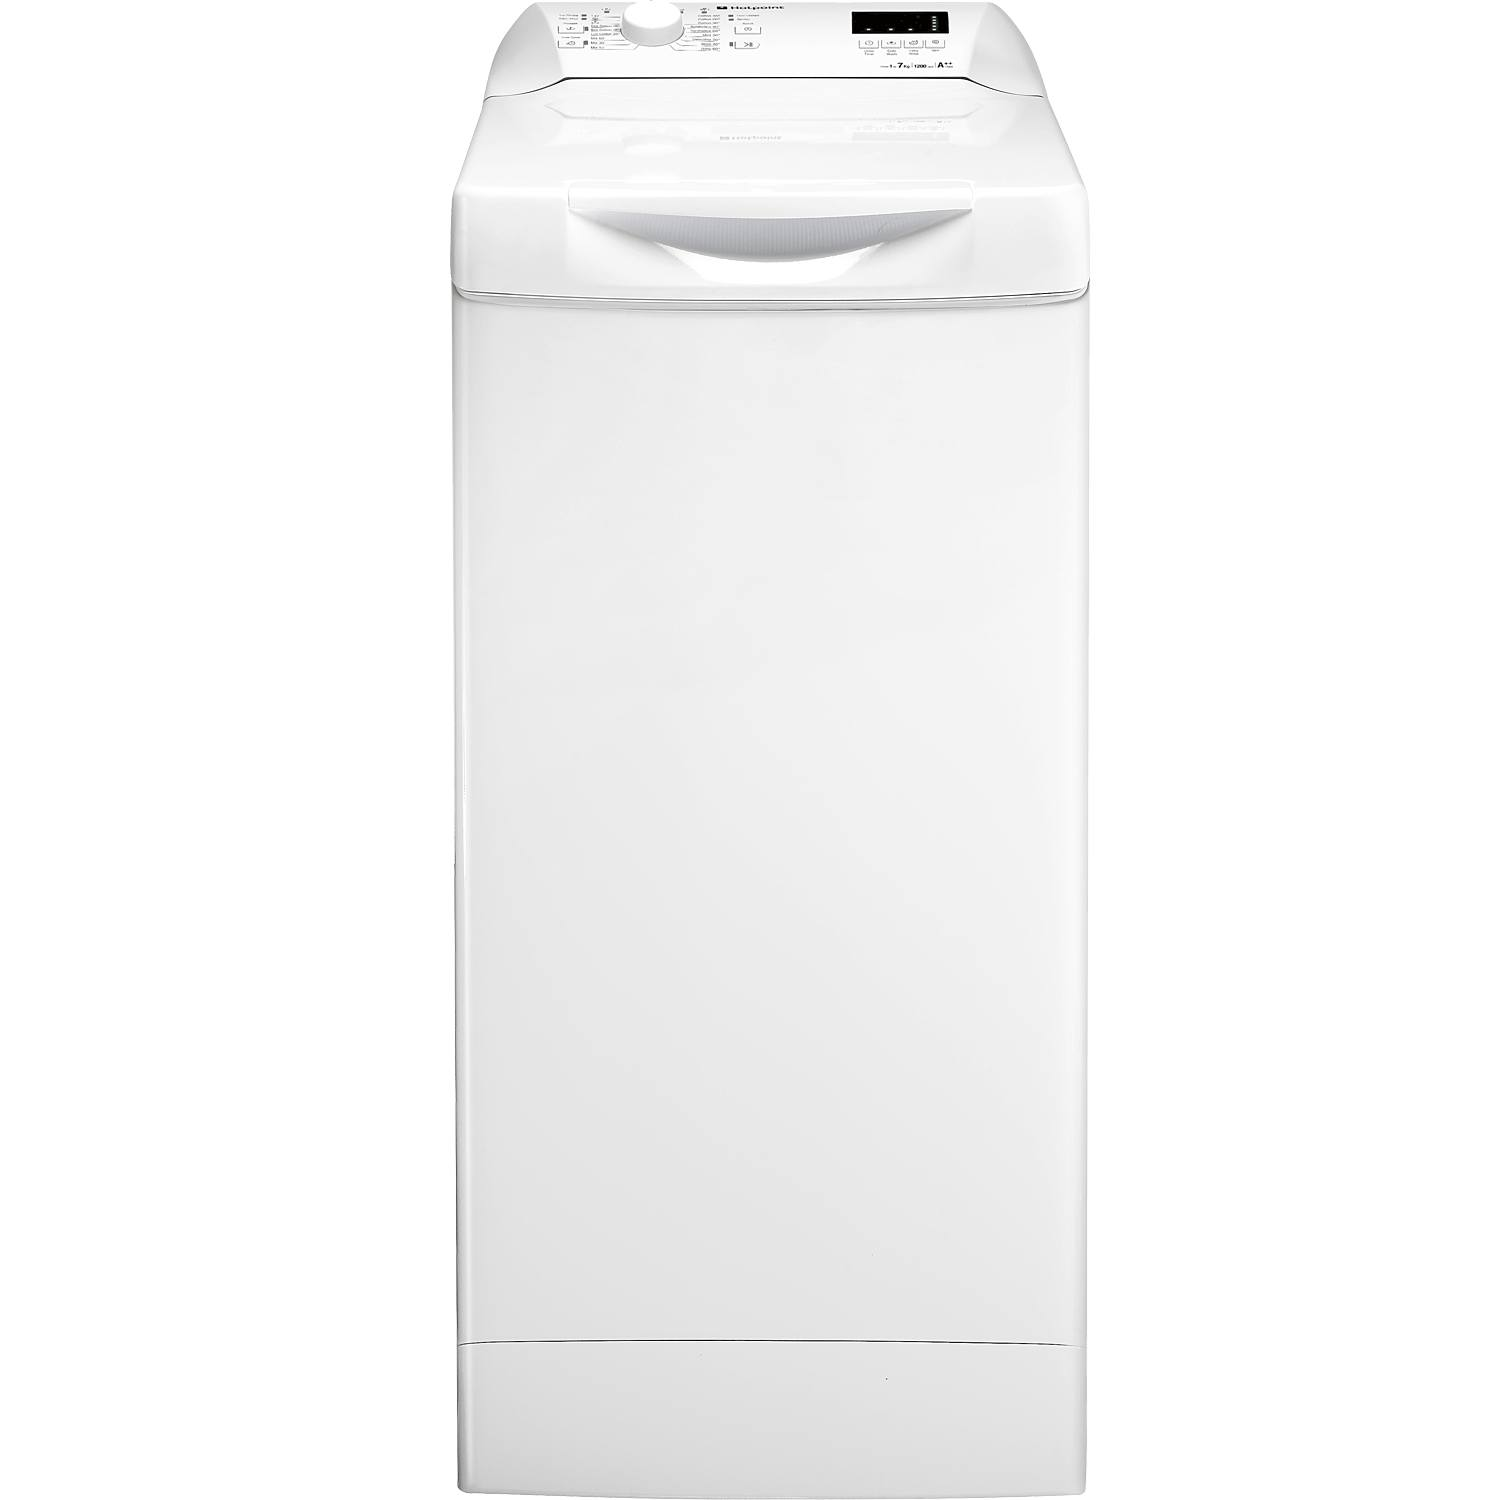 Hotpoint Top Loading Washing Machine Hotpoint Aquarius Wmtf722h 7kg 1200 Spin Top Loading Washing